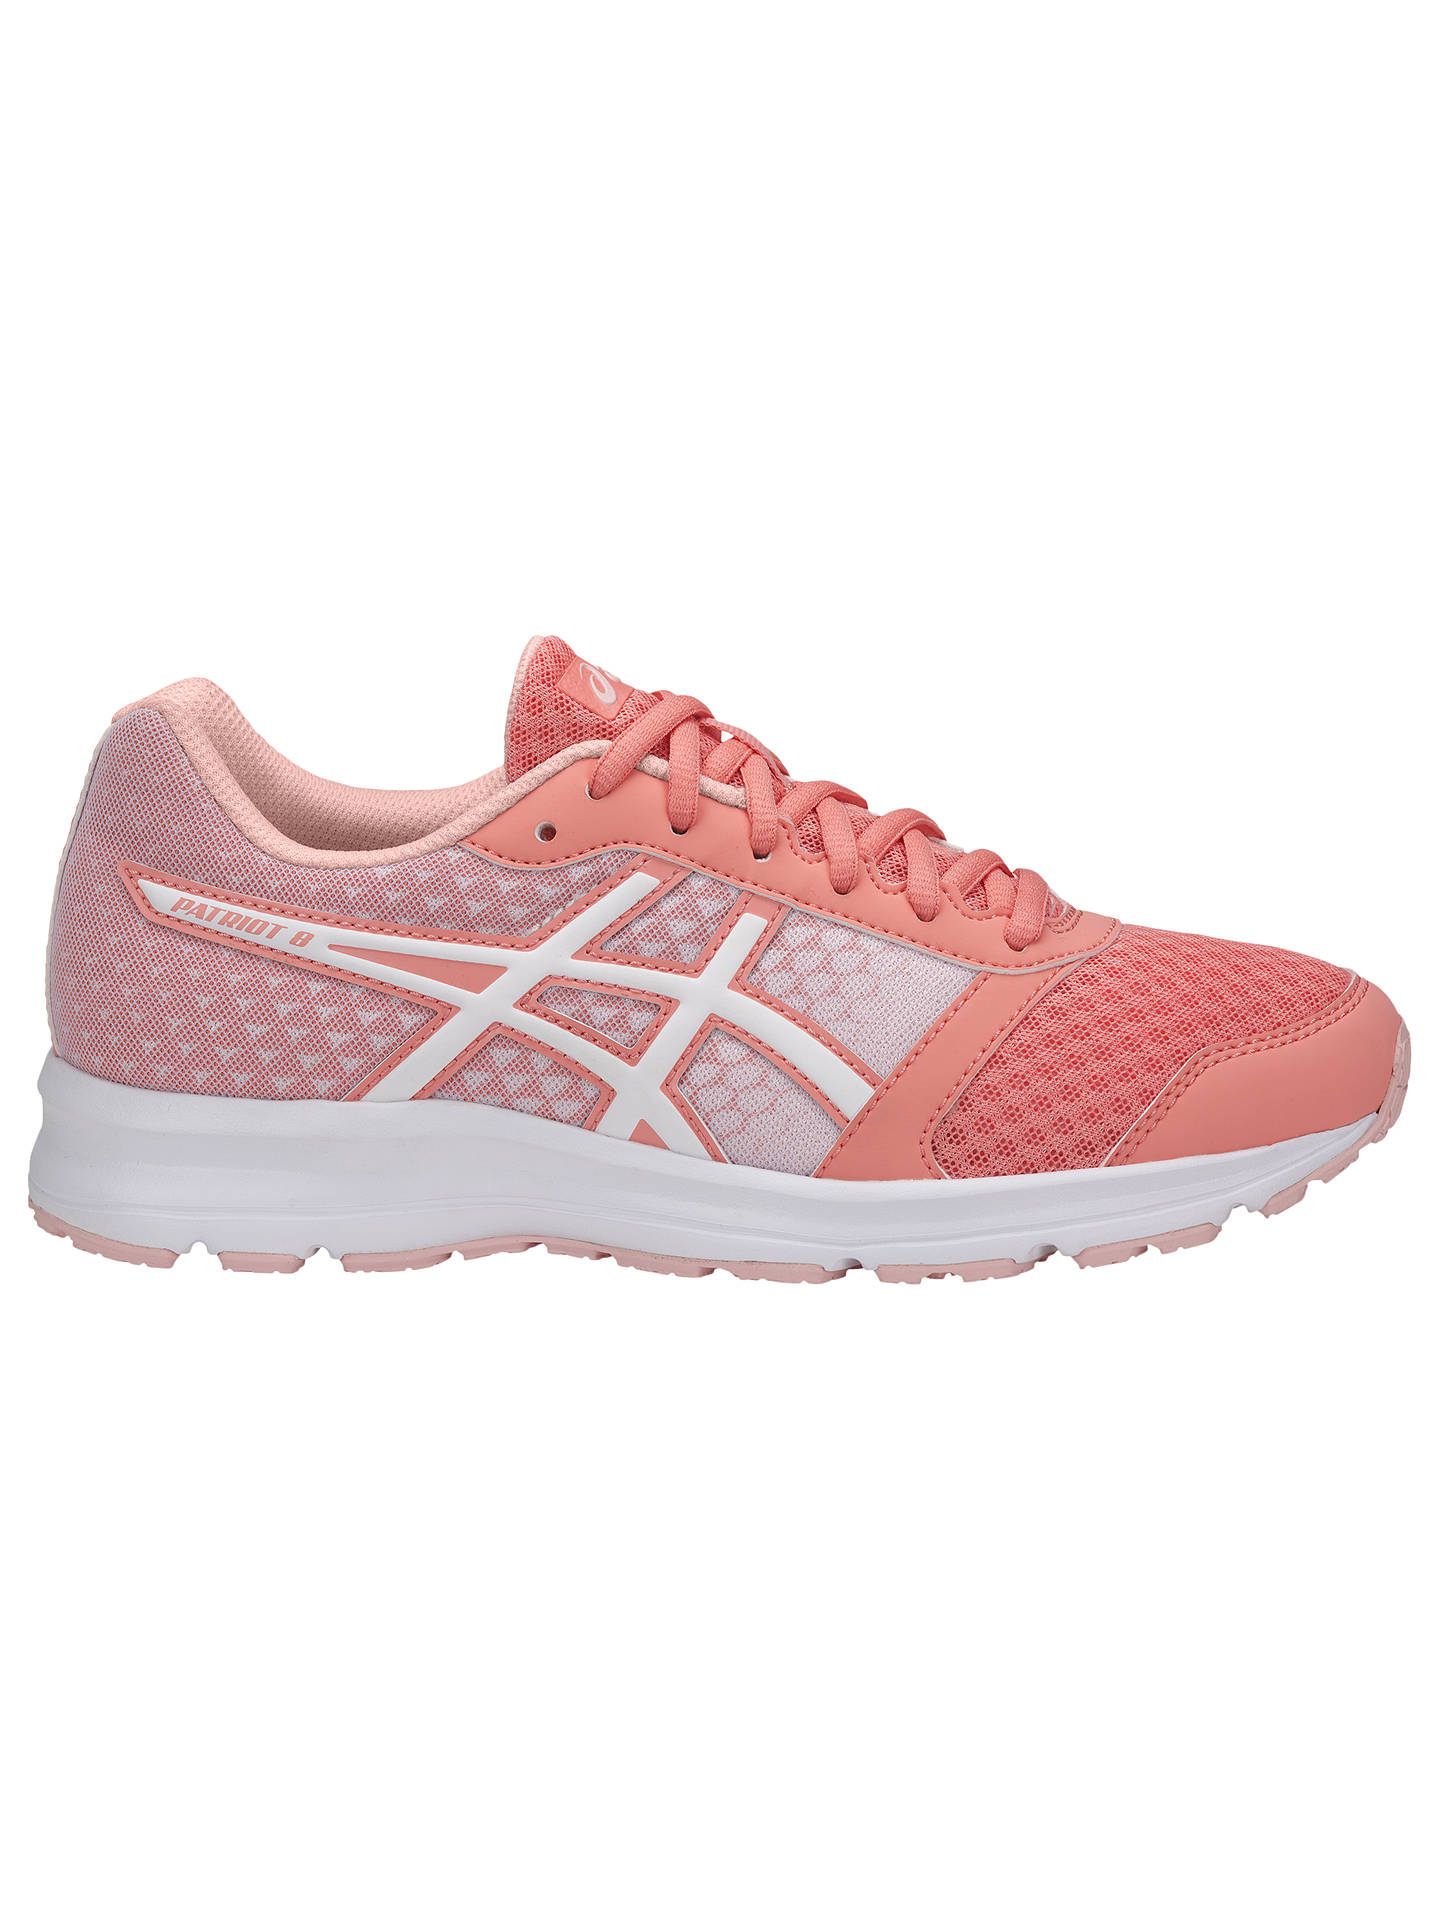 Asics Patriot 9 Women's Running Shoes at John Lewis & Partners